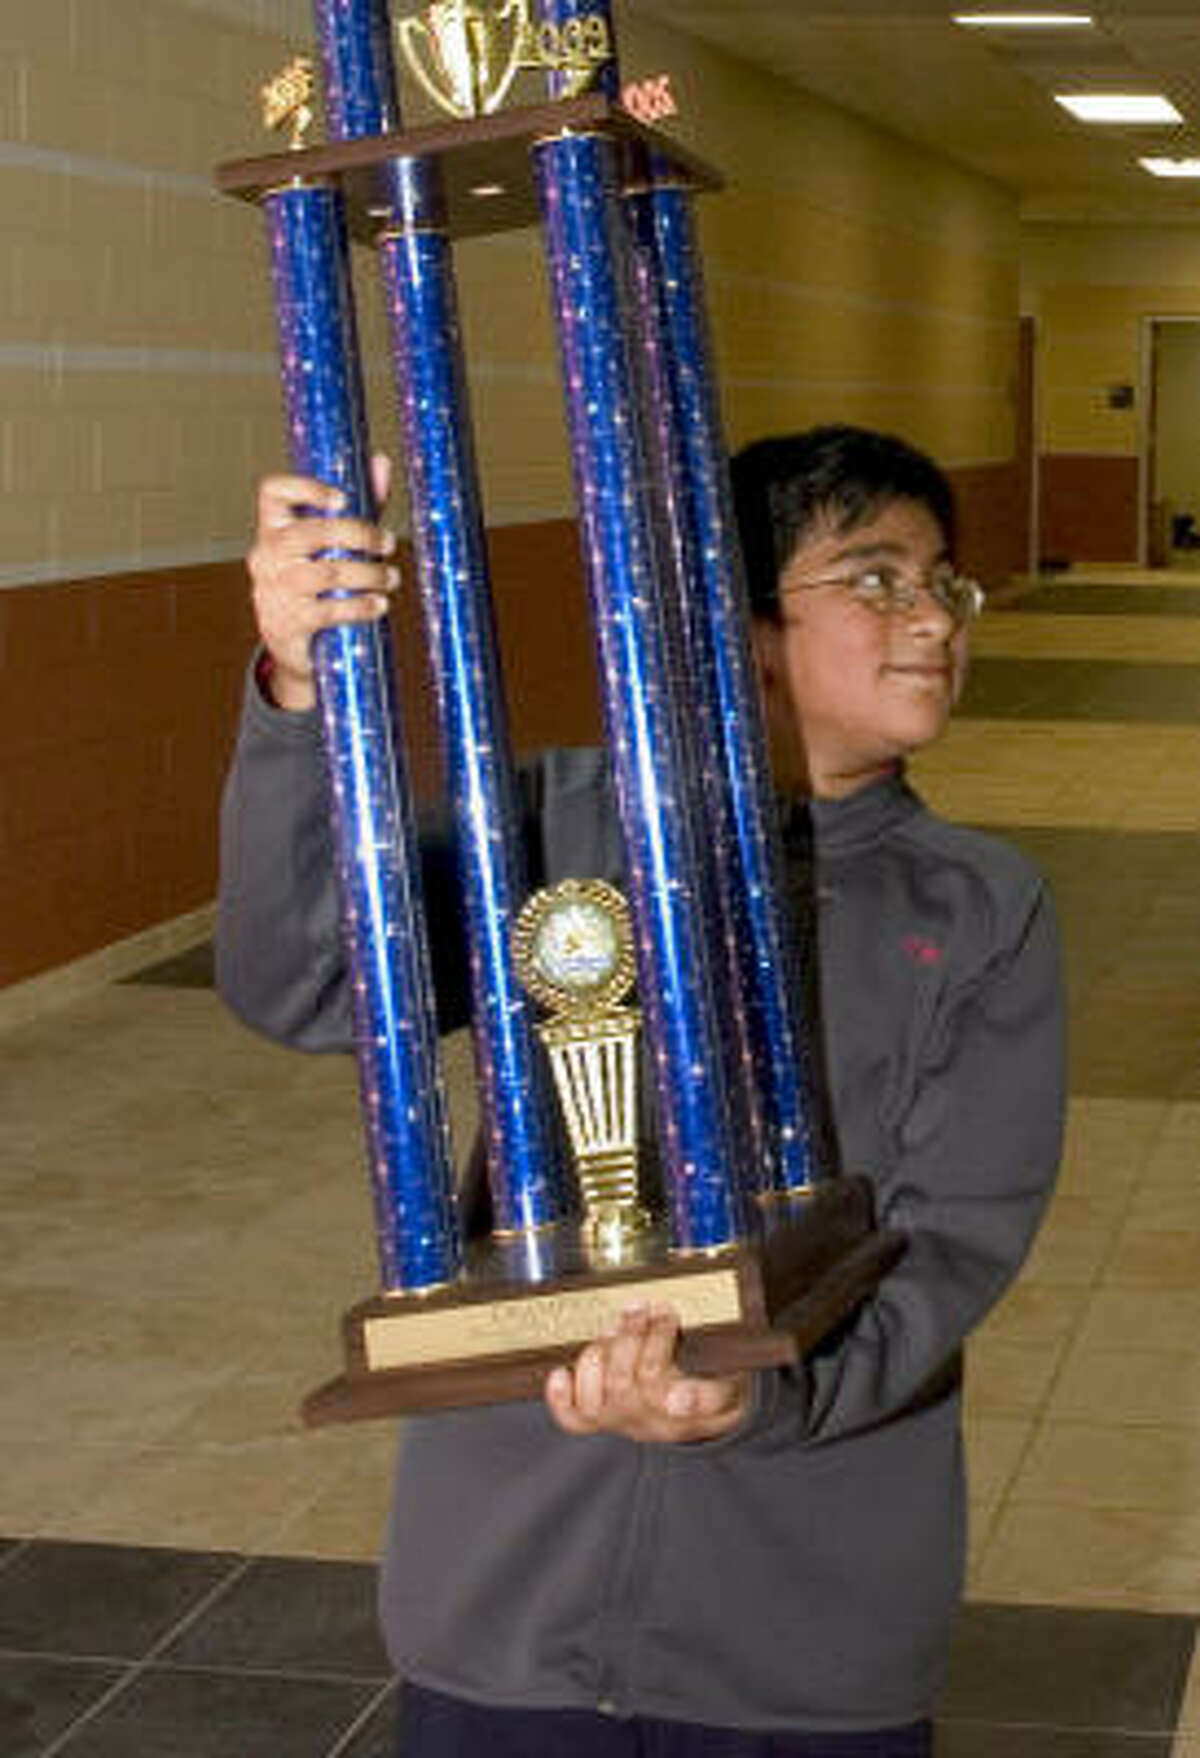 Aditya Chemudupaty shows off his trophy last month after his win in Pearland.